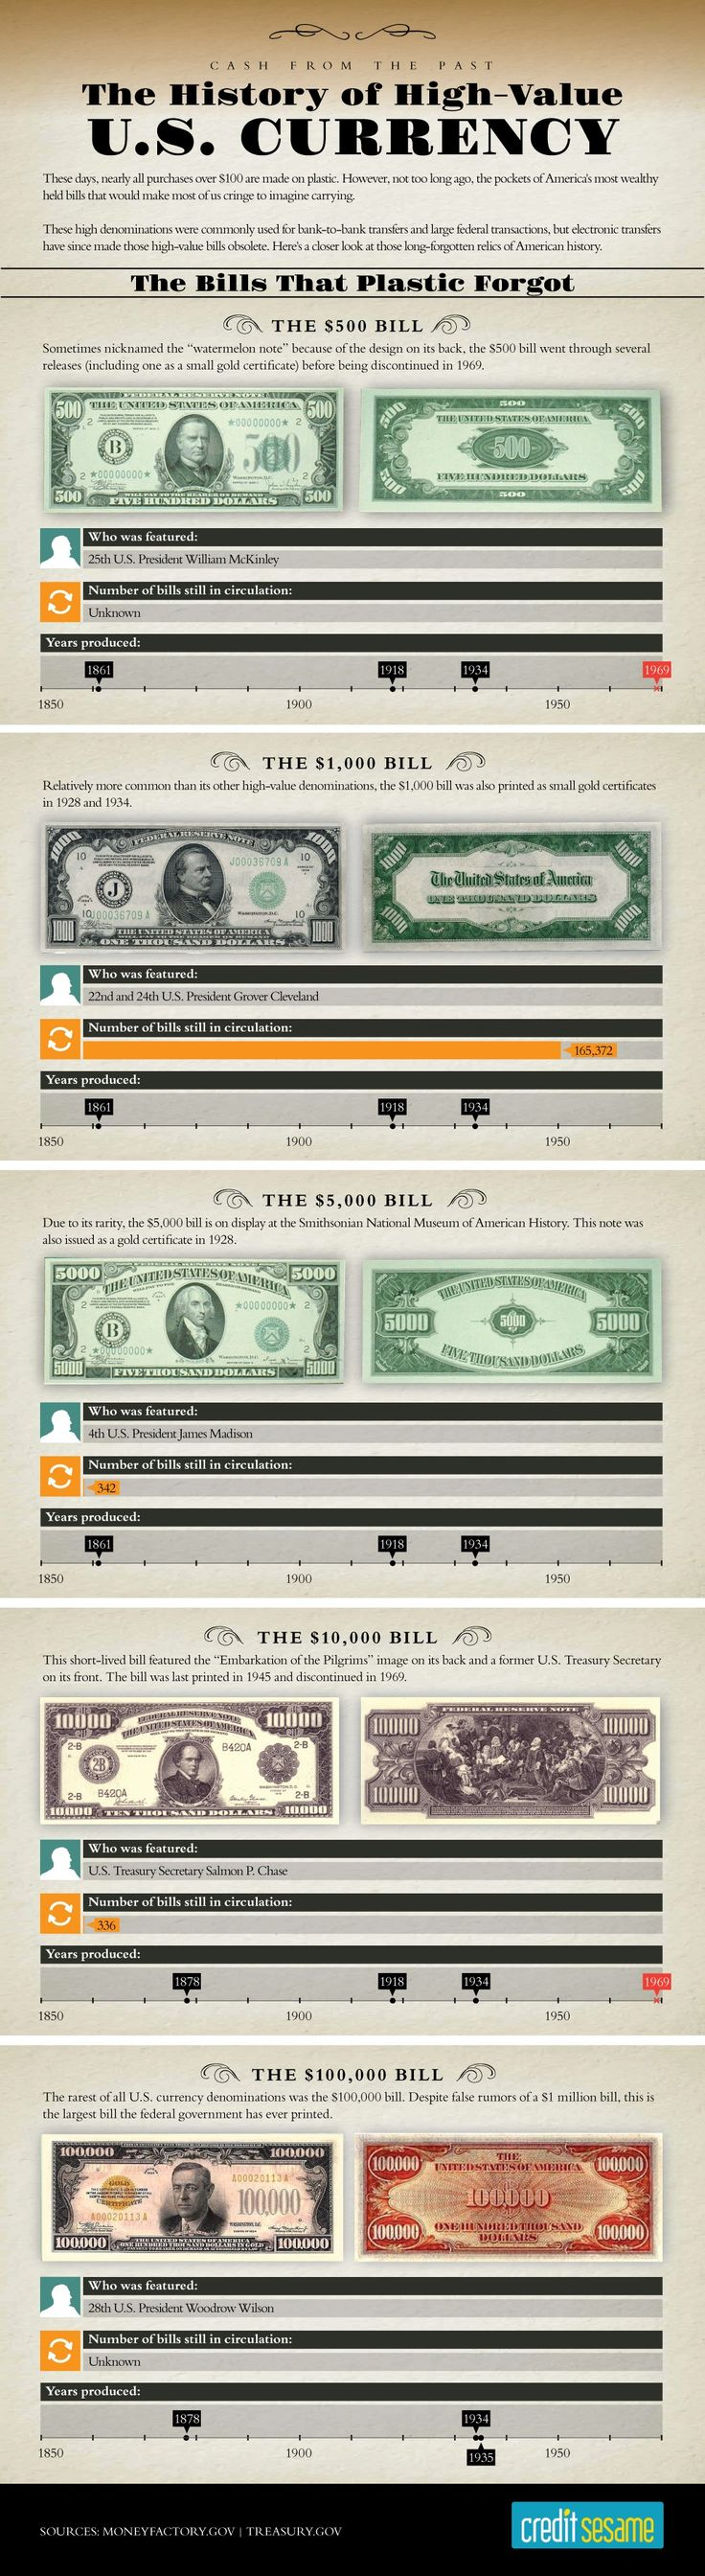 The History of High-Value U.S. Currency | The Bills That Plastic Forgot at Save Money with Credit Sesame | Credit Sesame